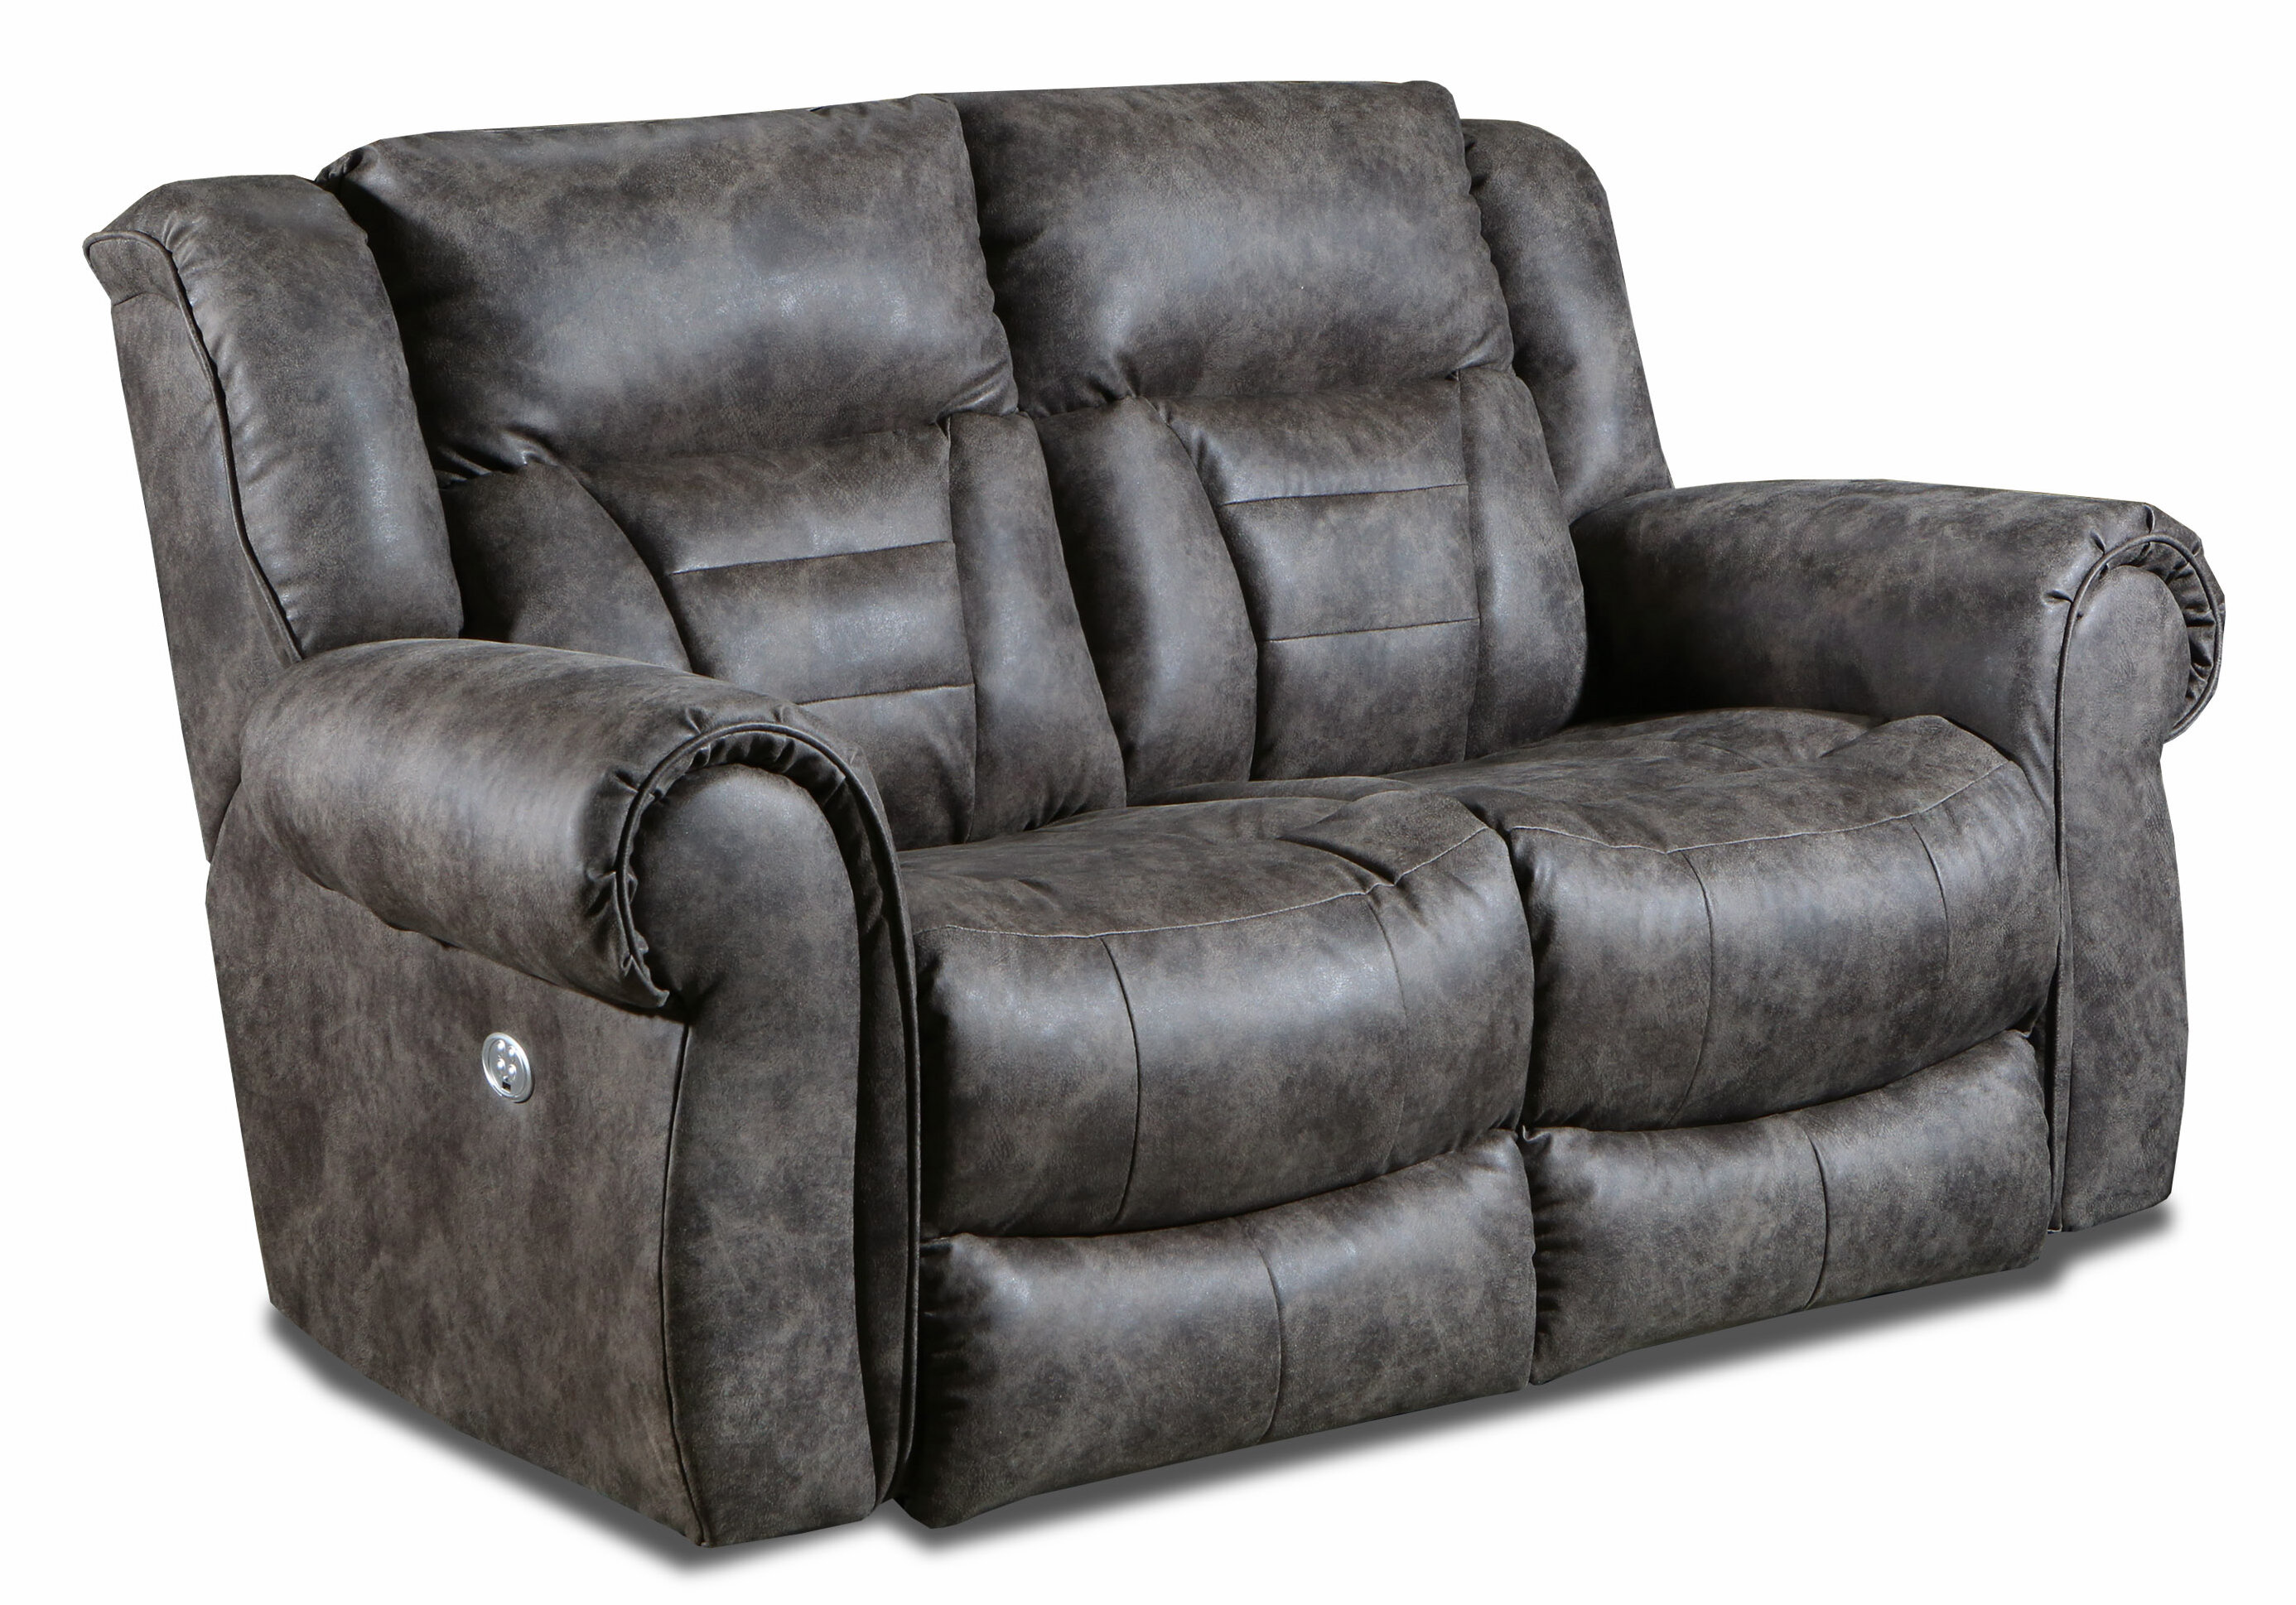 Marvelous Titan Double Reclining Loveseat Dailytribune Chair Design For Home Dailytribuneorg